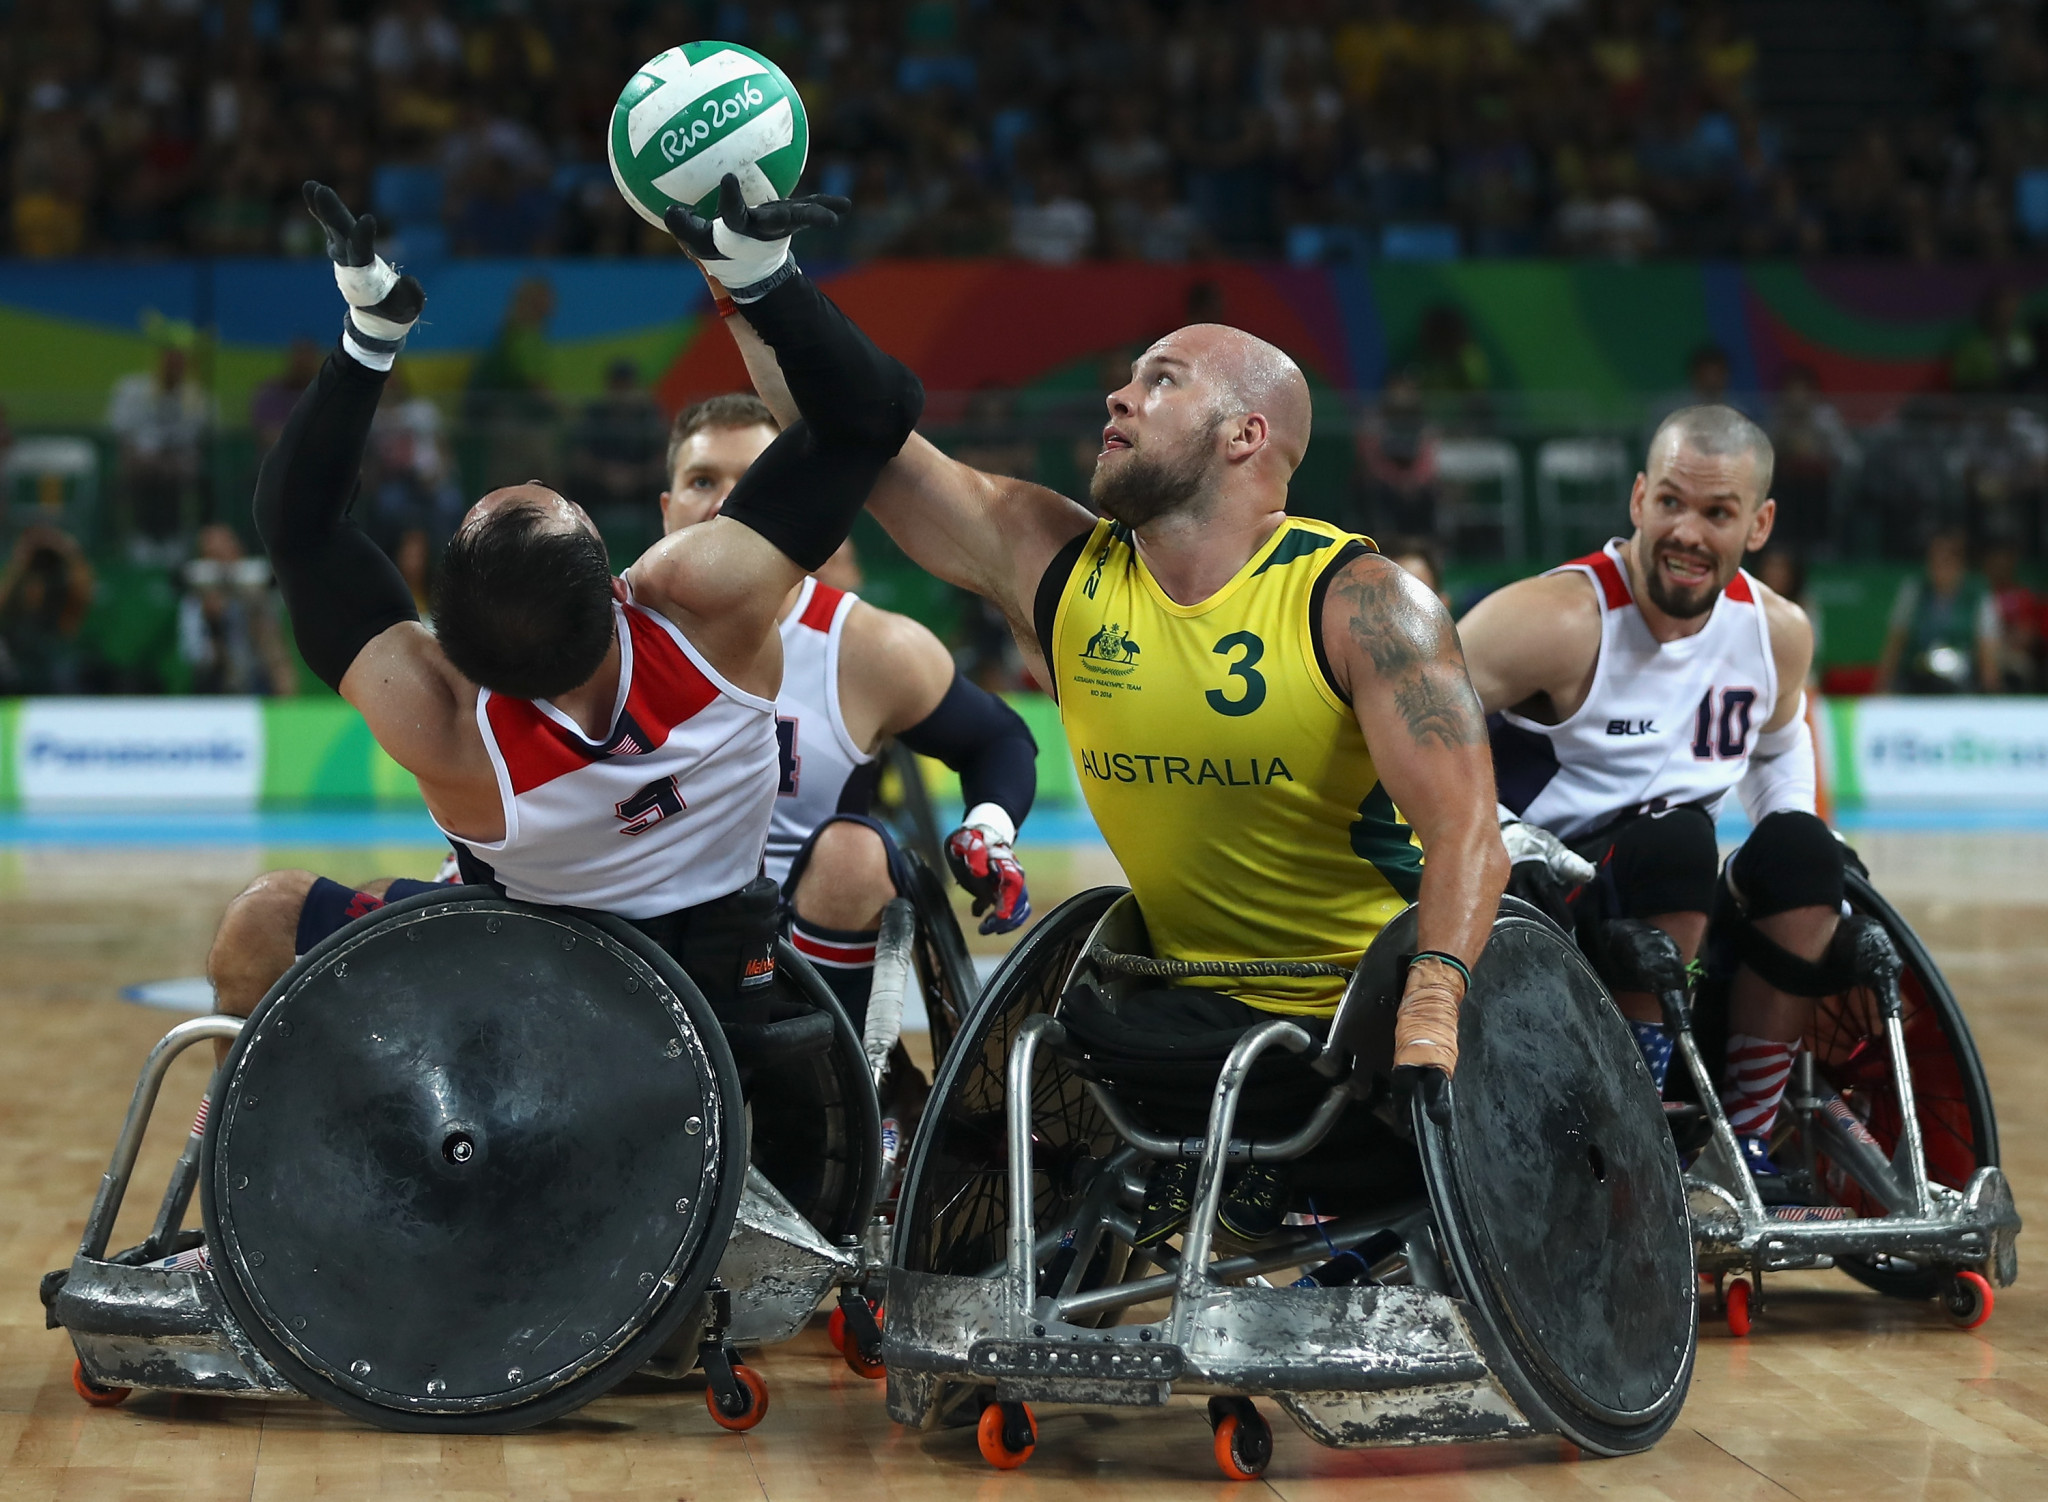 Australia beat the United States to retain their Paralympic title in Rio ©Getty Images